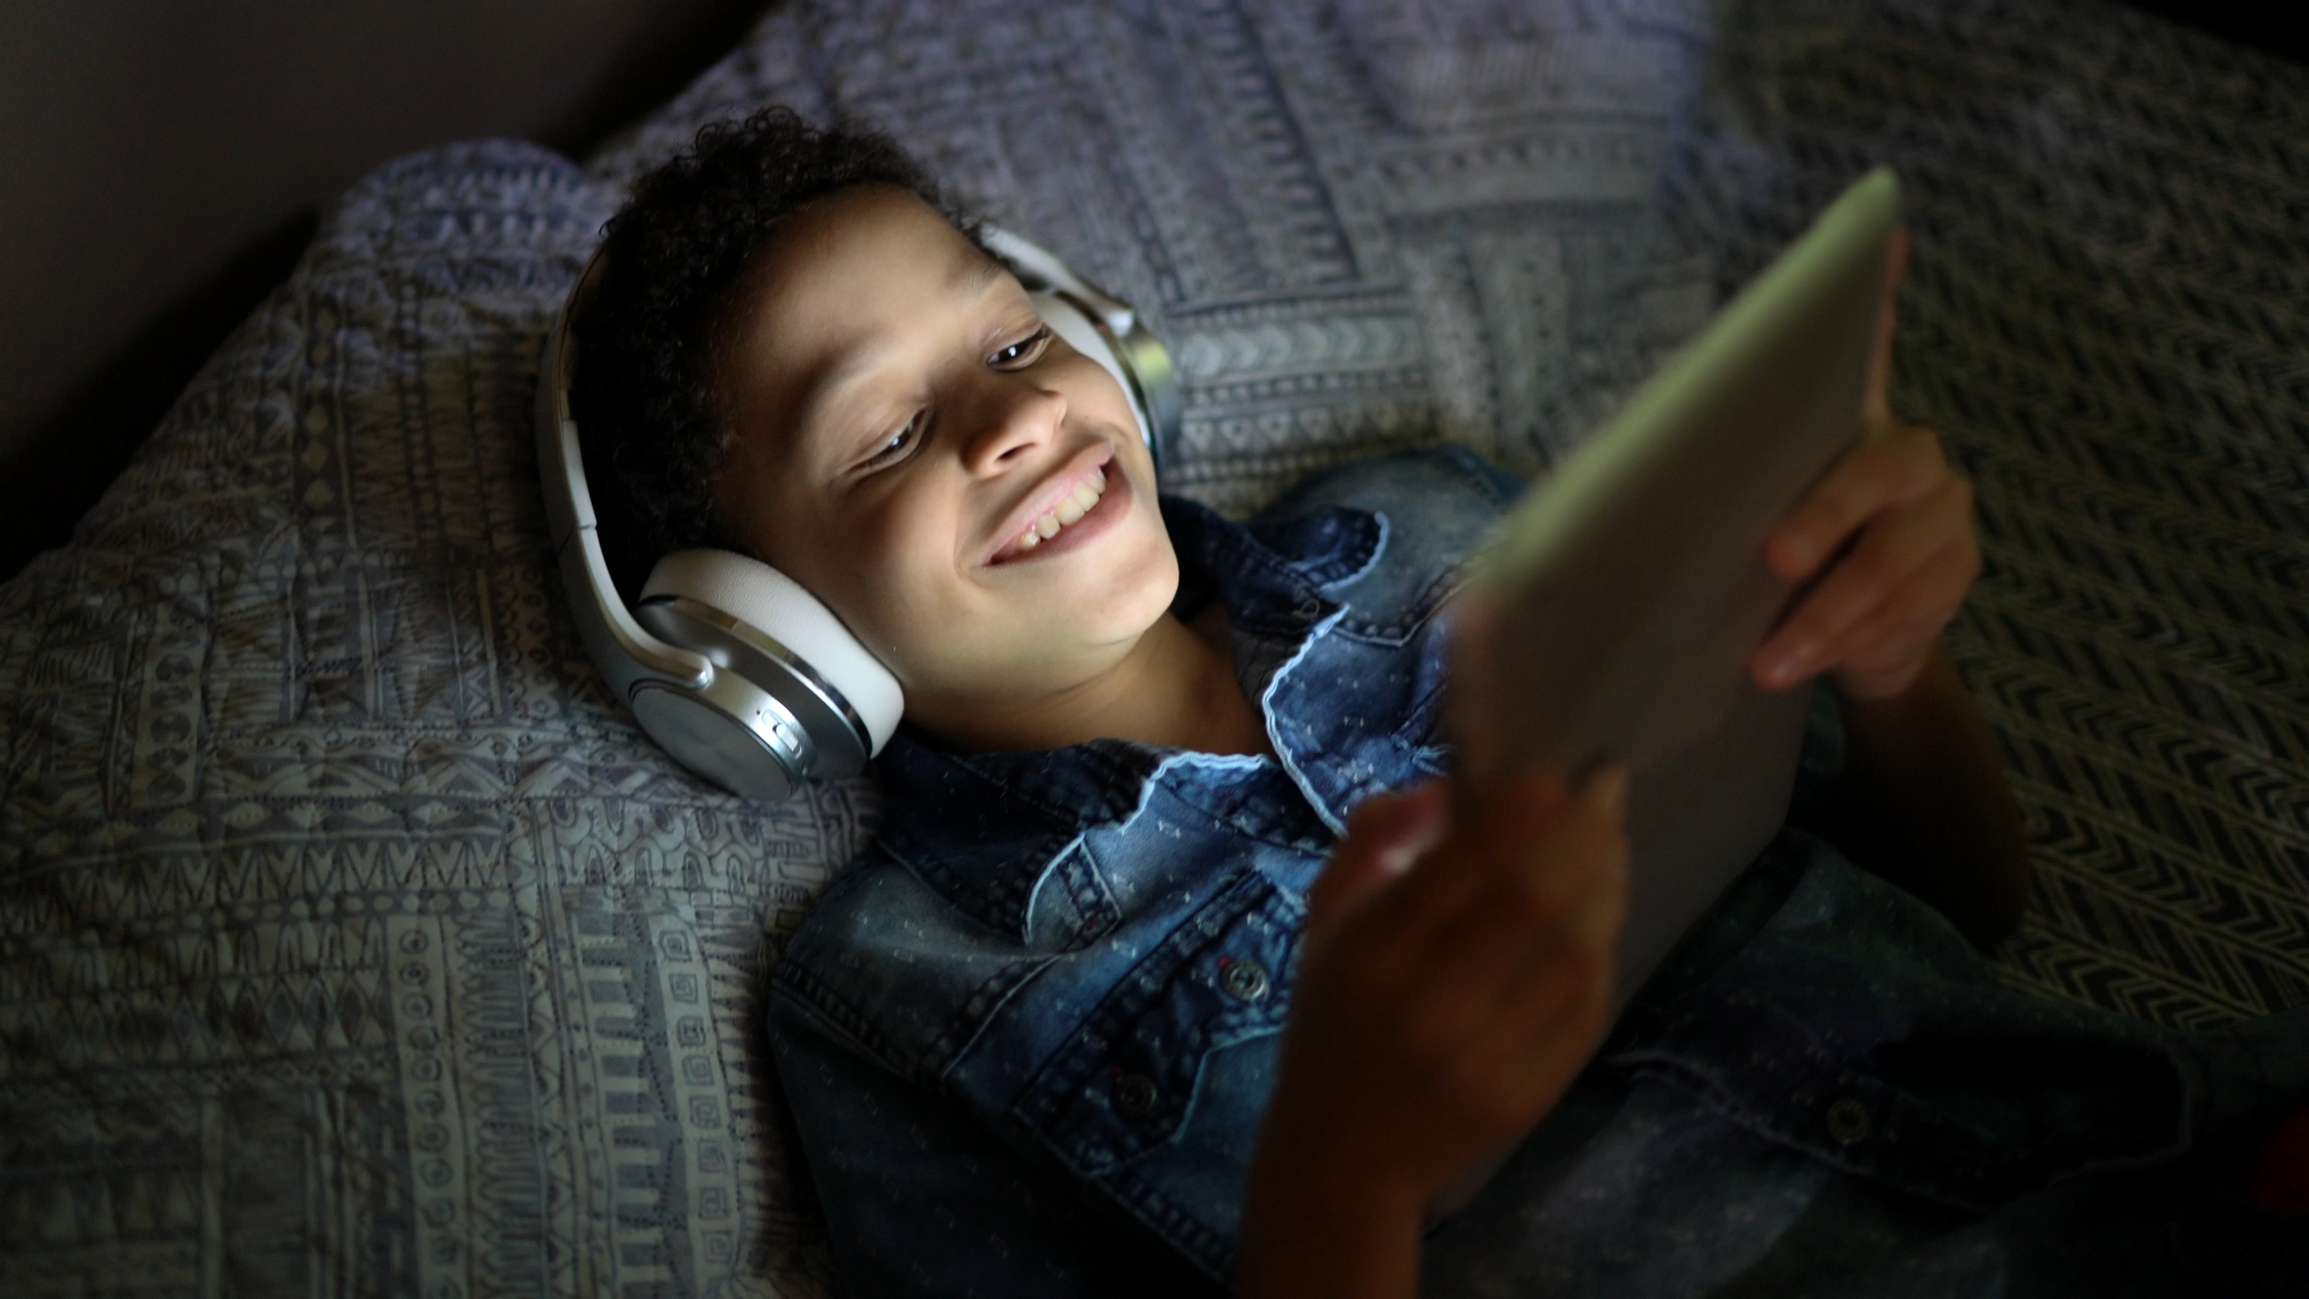 A teen laying in bed watching a movie on a tablet.